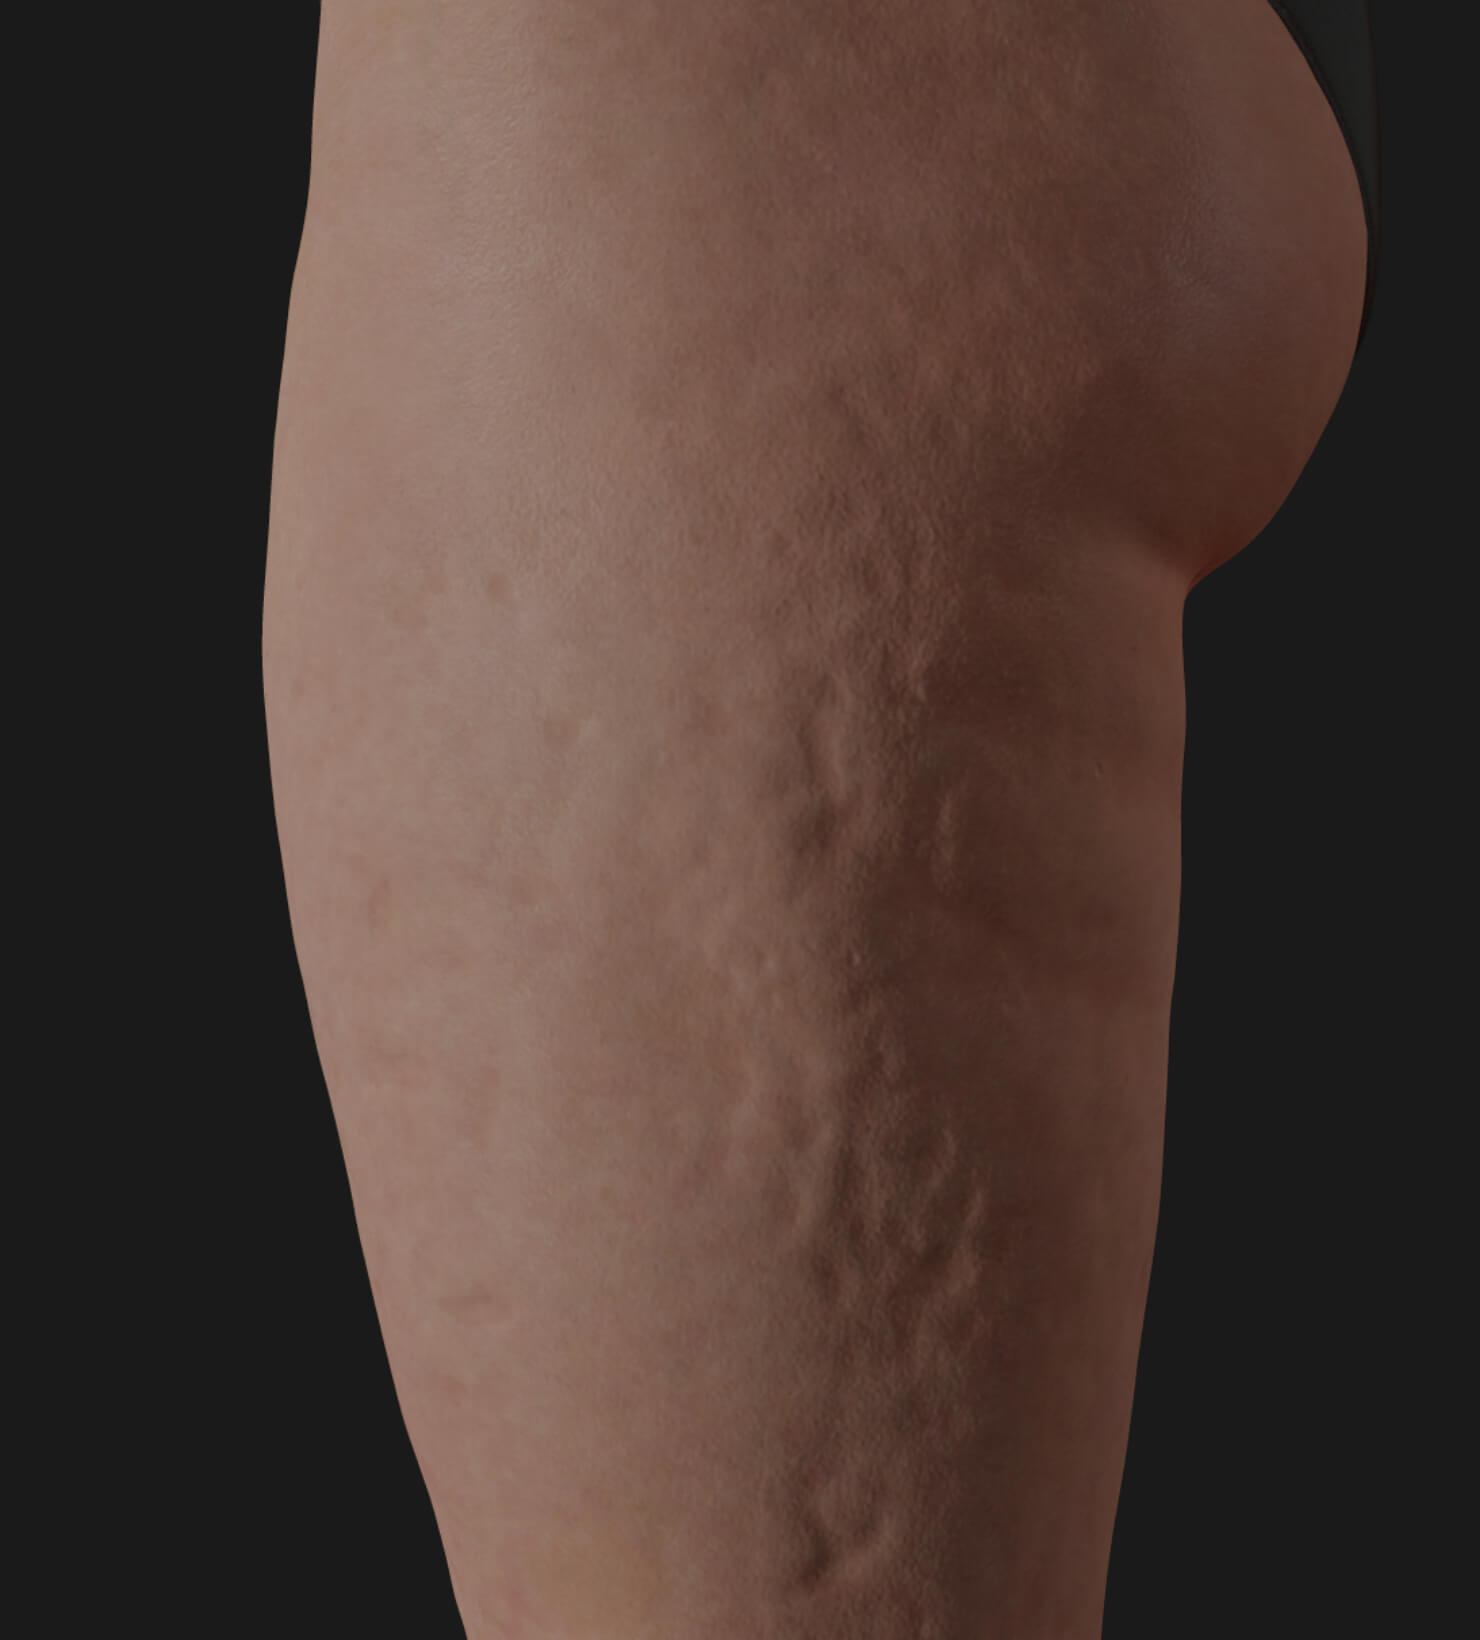 Side thighs of a Clinique Chloé patient showing cellulite, to be treated with Tight Sculpting laser for cellulite reduction